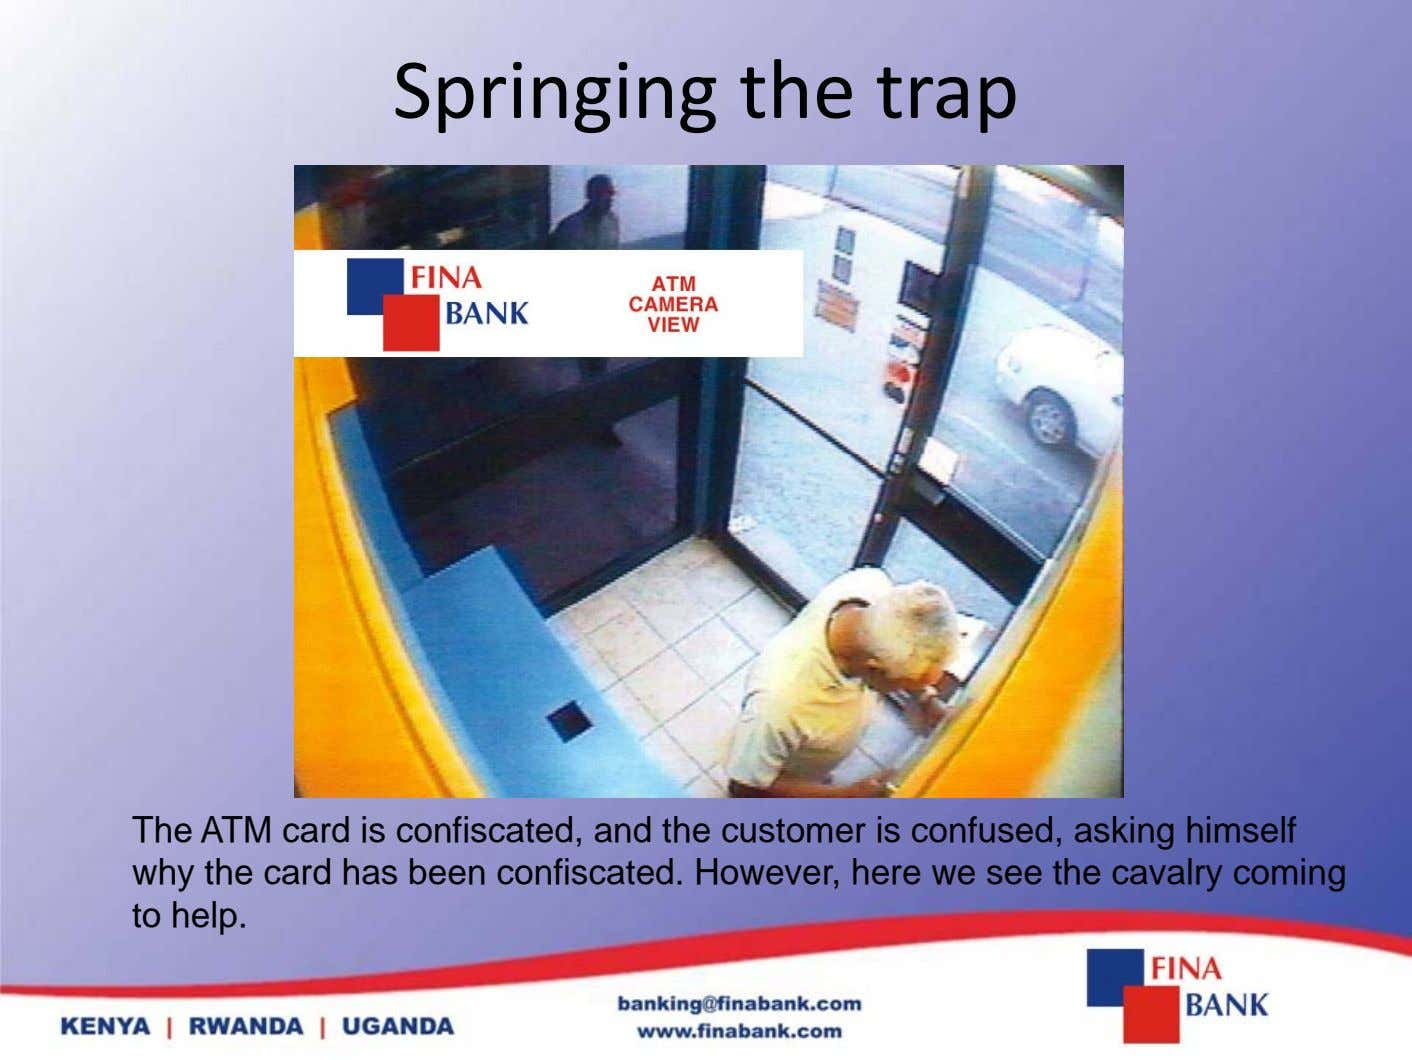 Springing the trap The ATM card is confiscated, and the customer is confused, asking himself